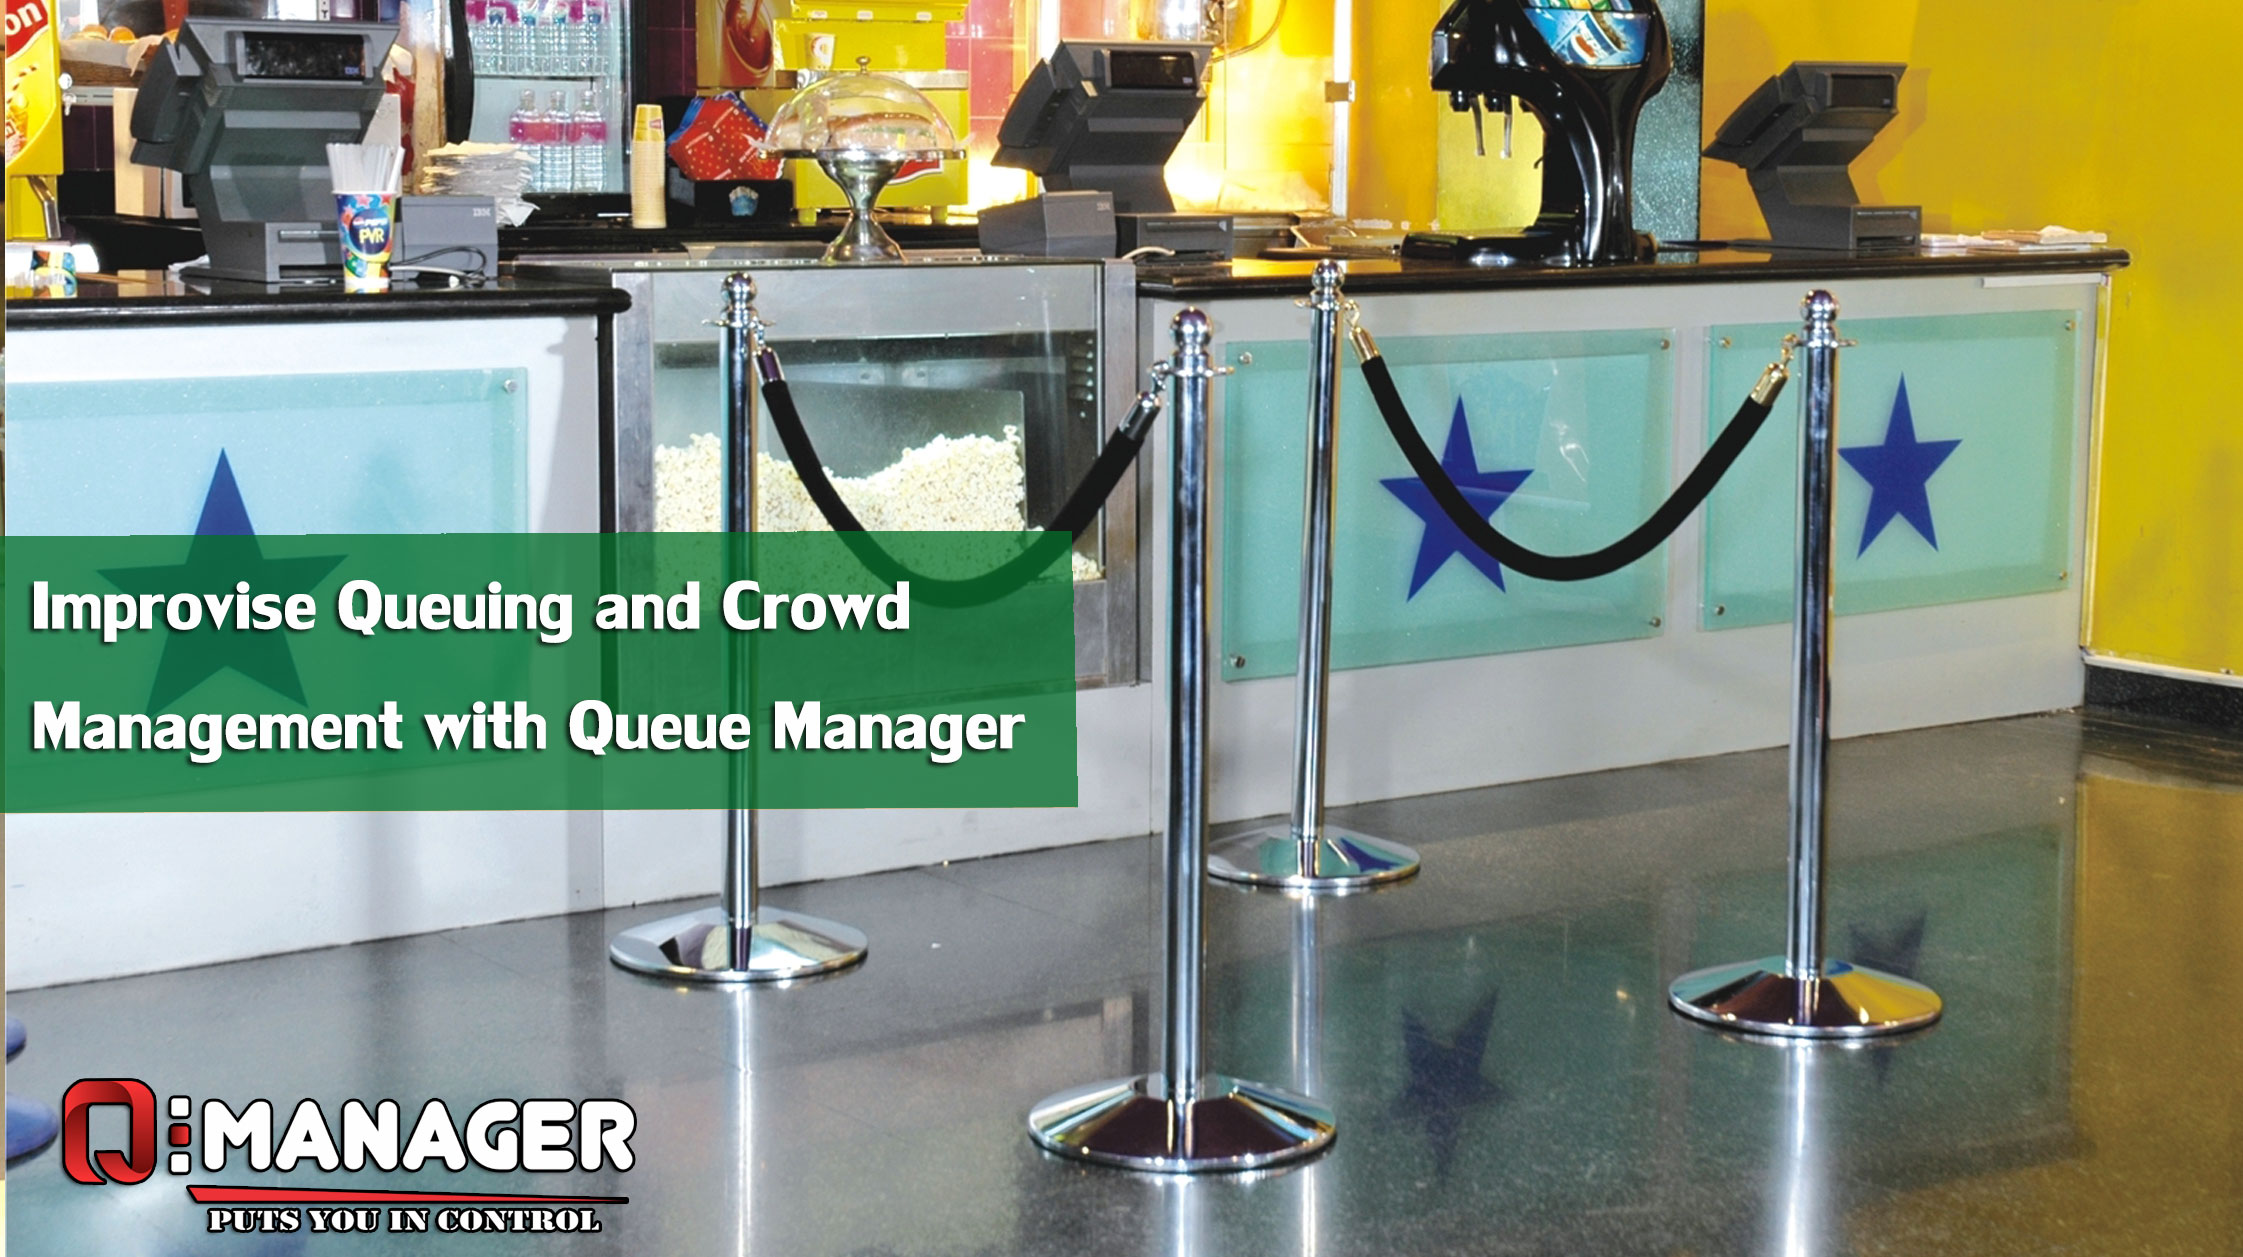 Improvise Queuing and Crowd Management with Queue Manager